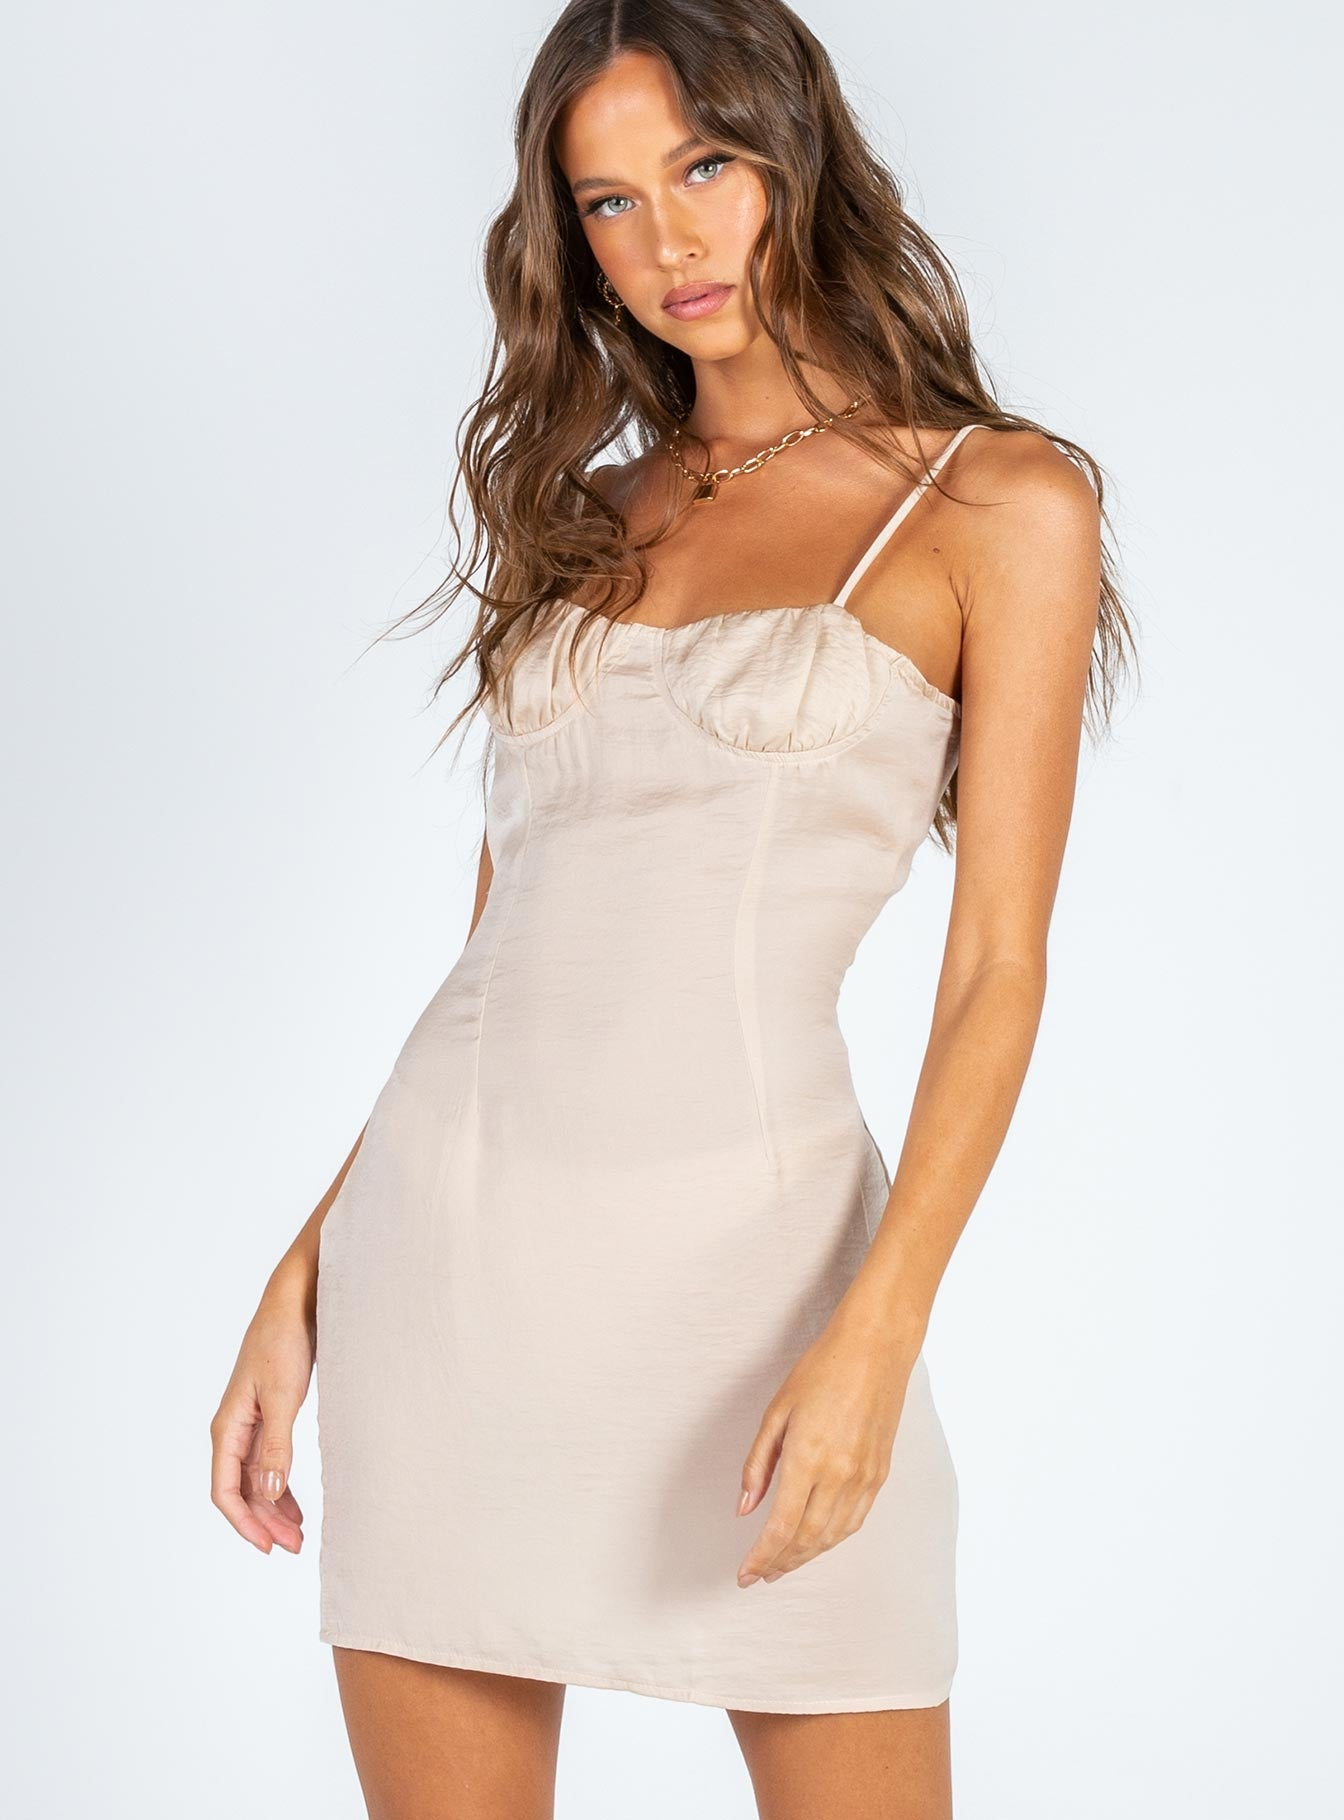 The Charm Mini Dress Beige